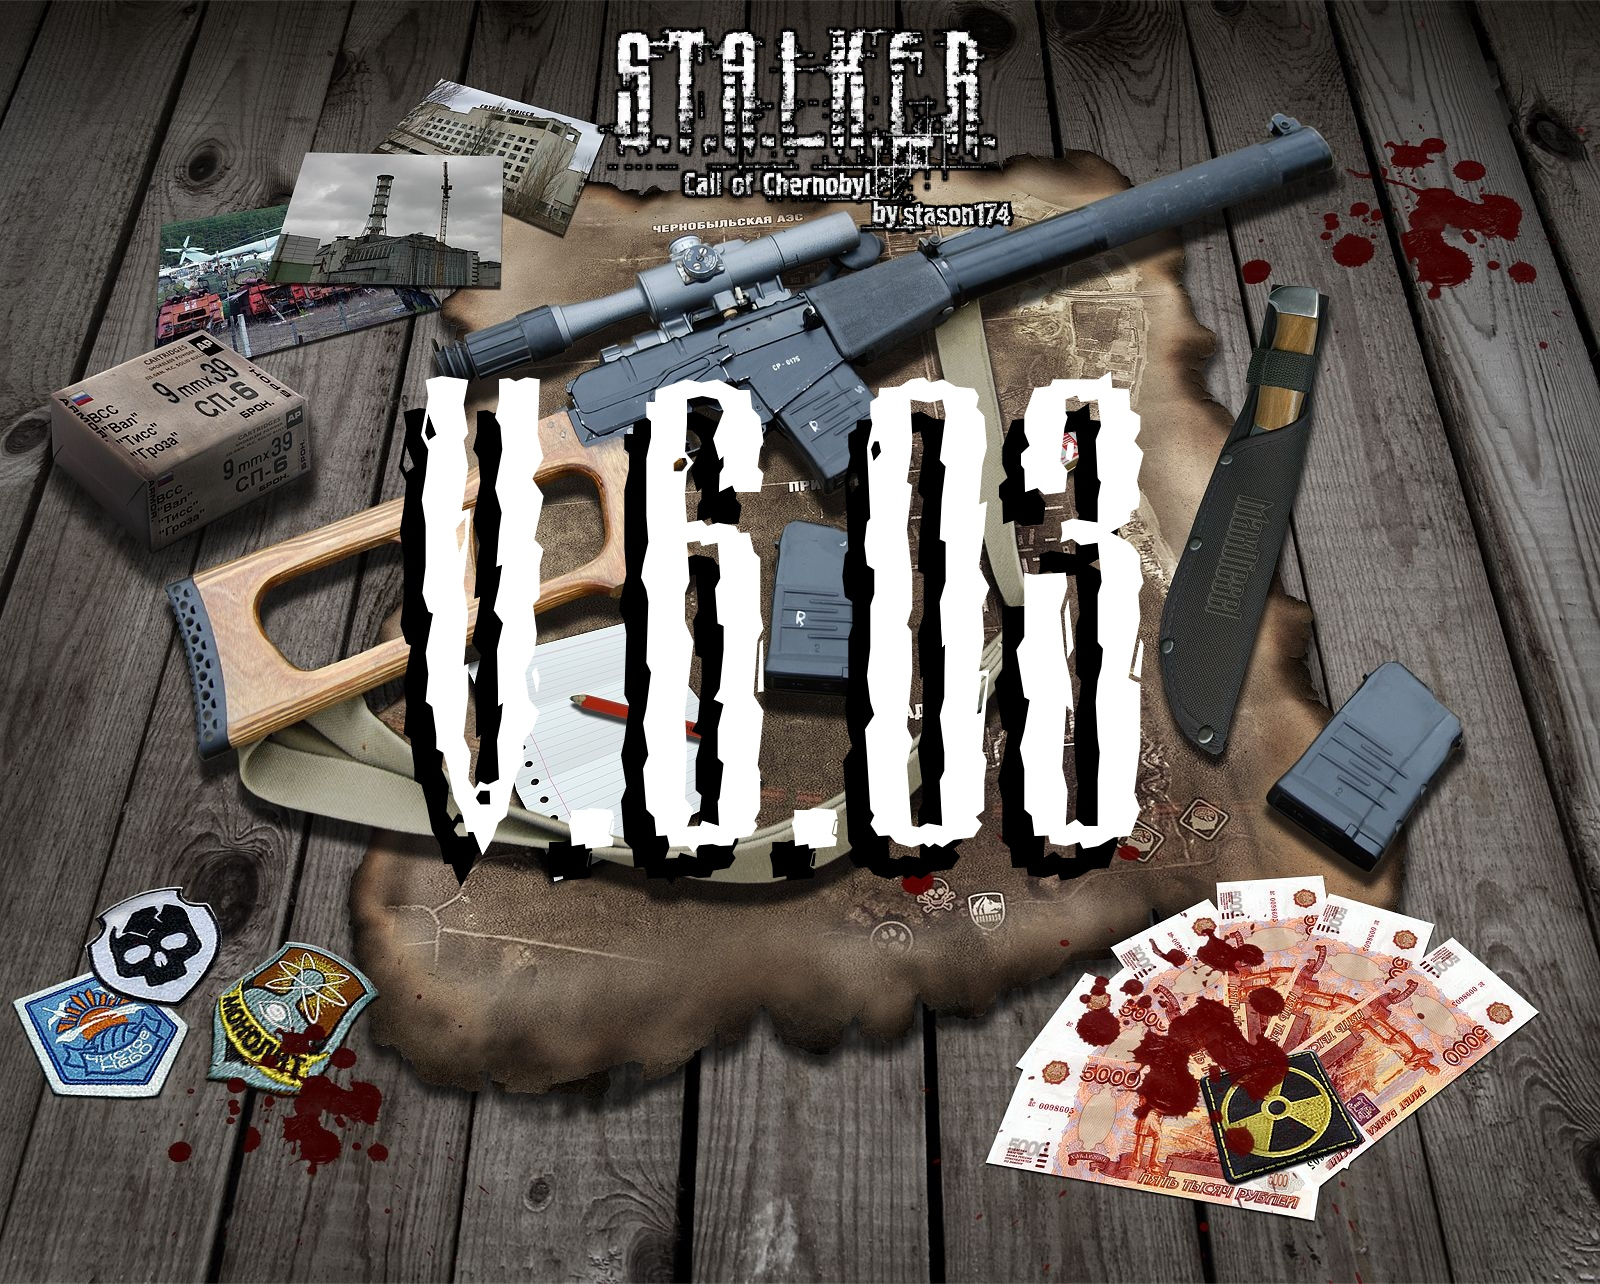 S.T.A.L.K.E.R. - Call of Chernobyl сборка от stason174 [v.6.03]